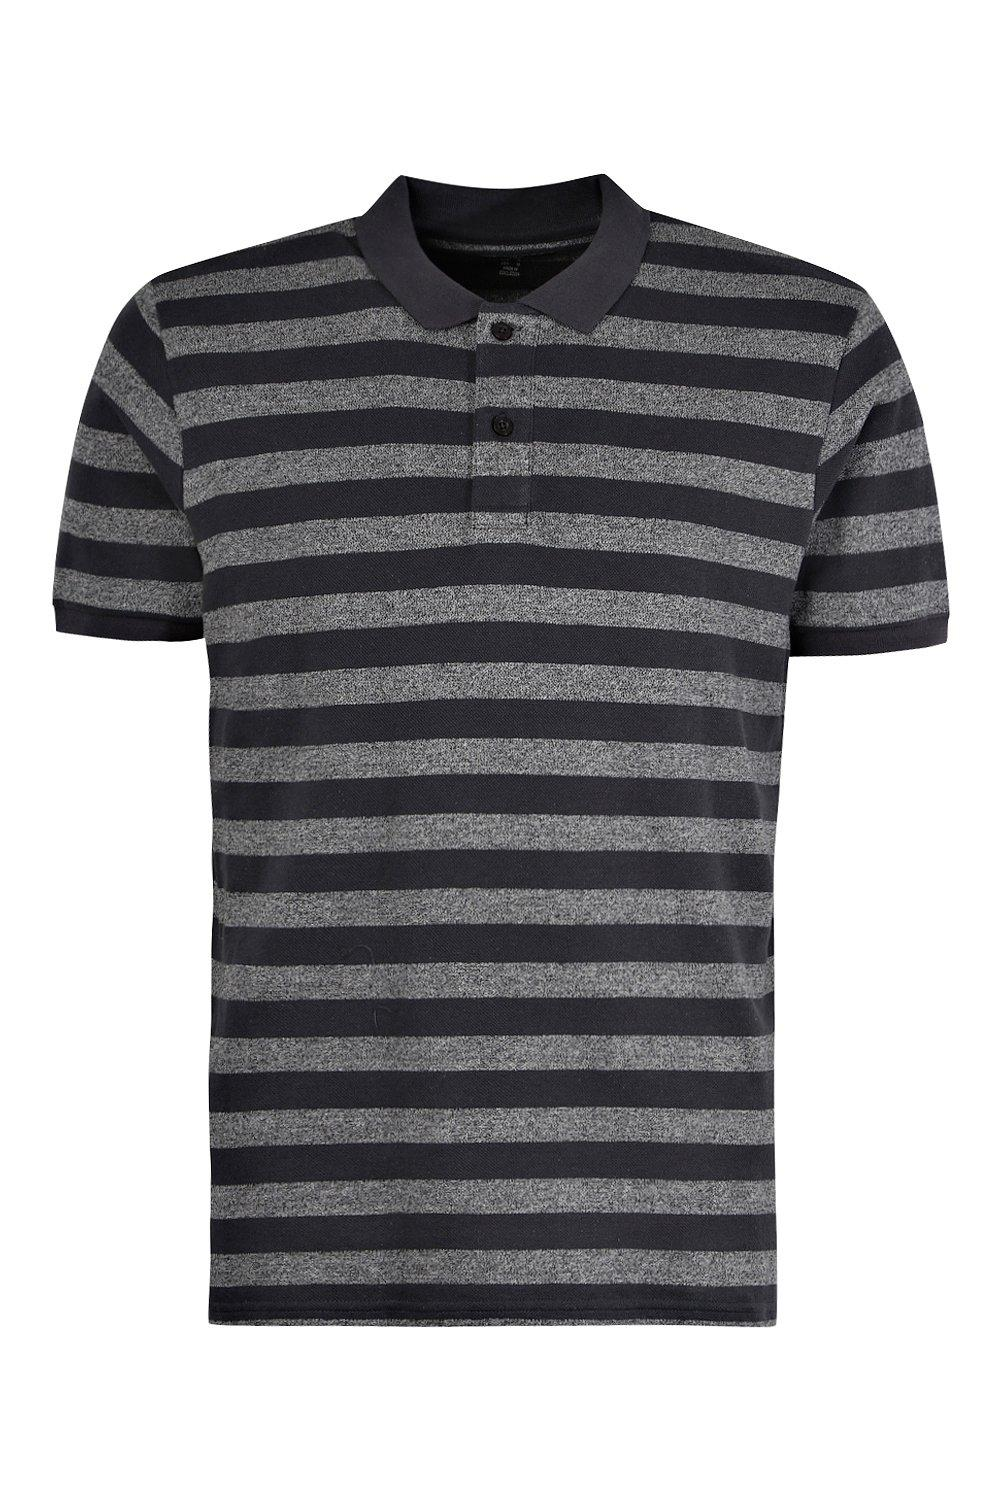 boohooMAN charcoal Yarn Dyed Striped Polo